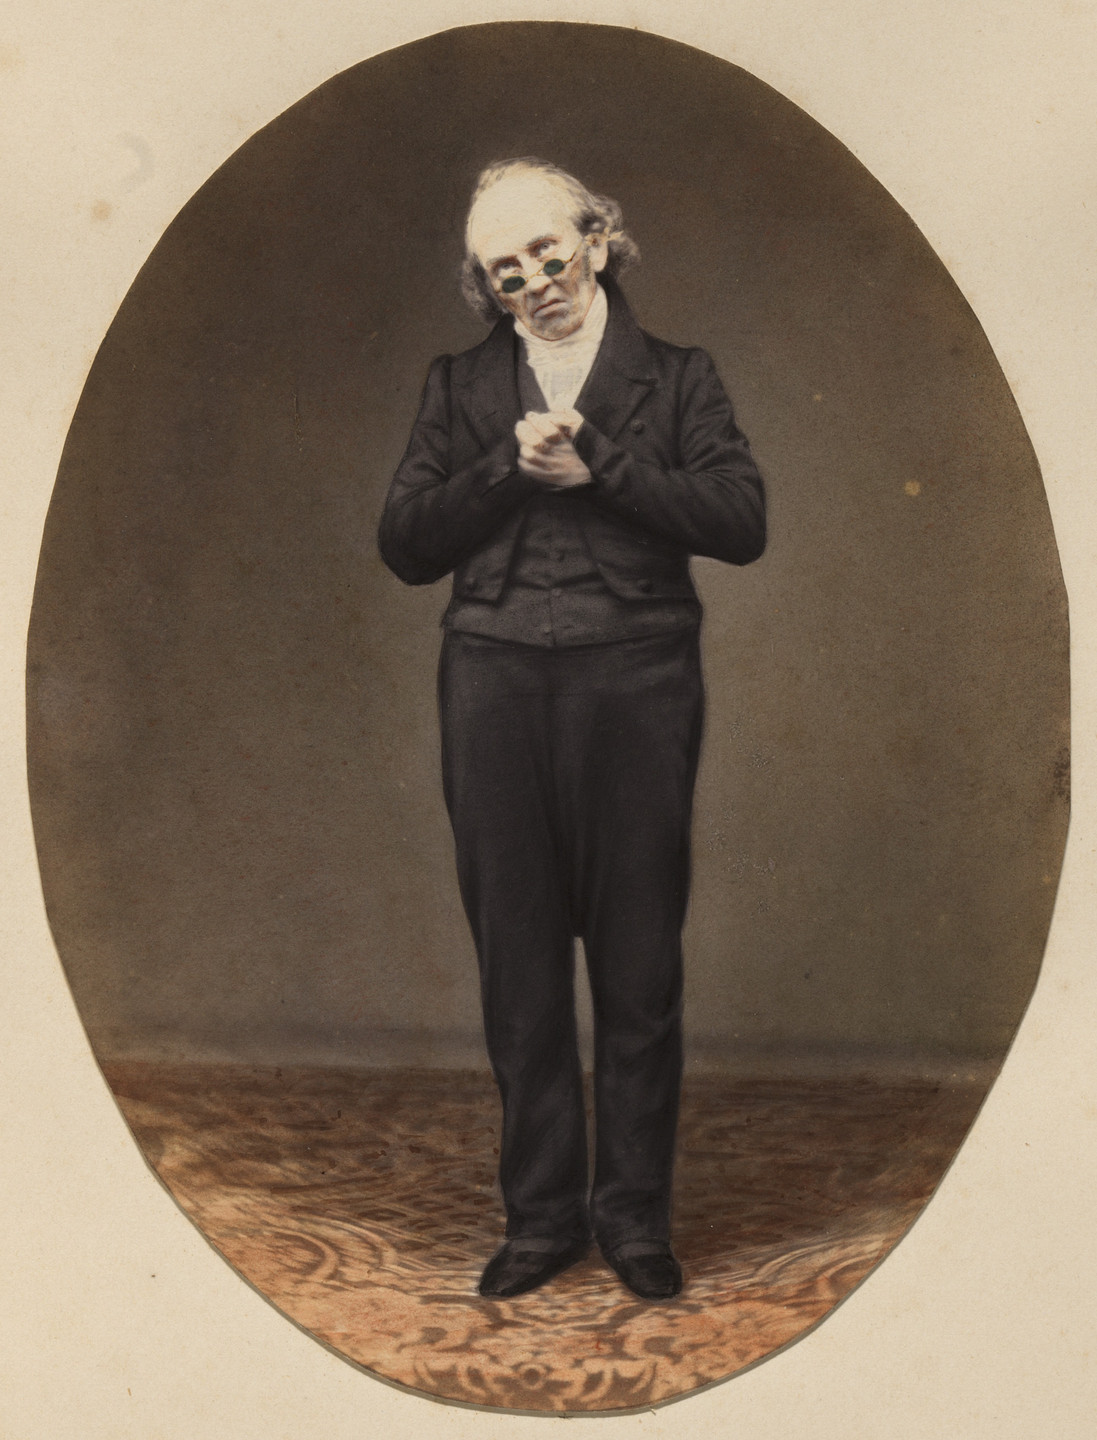 Unknown photographer. The Hansen Album. 1860